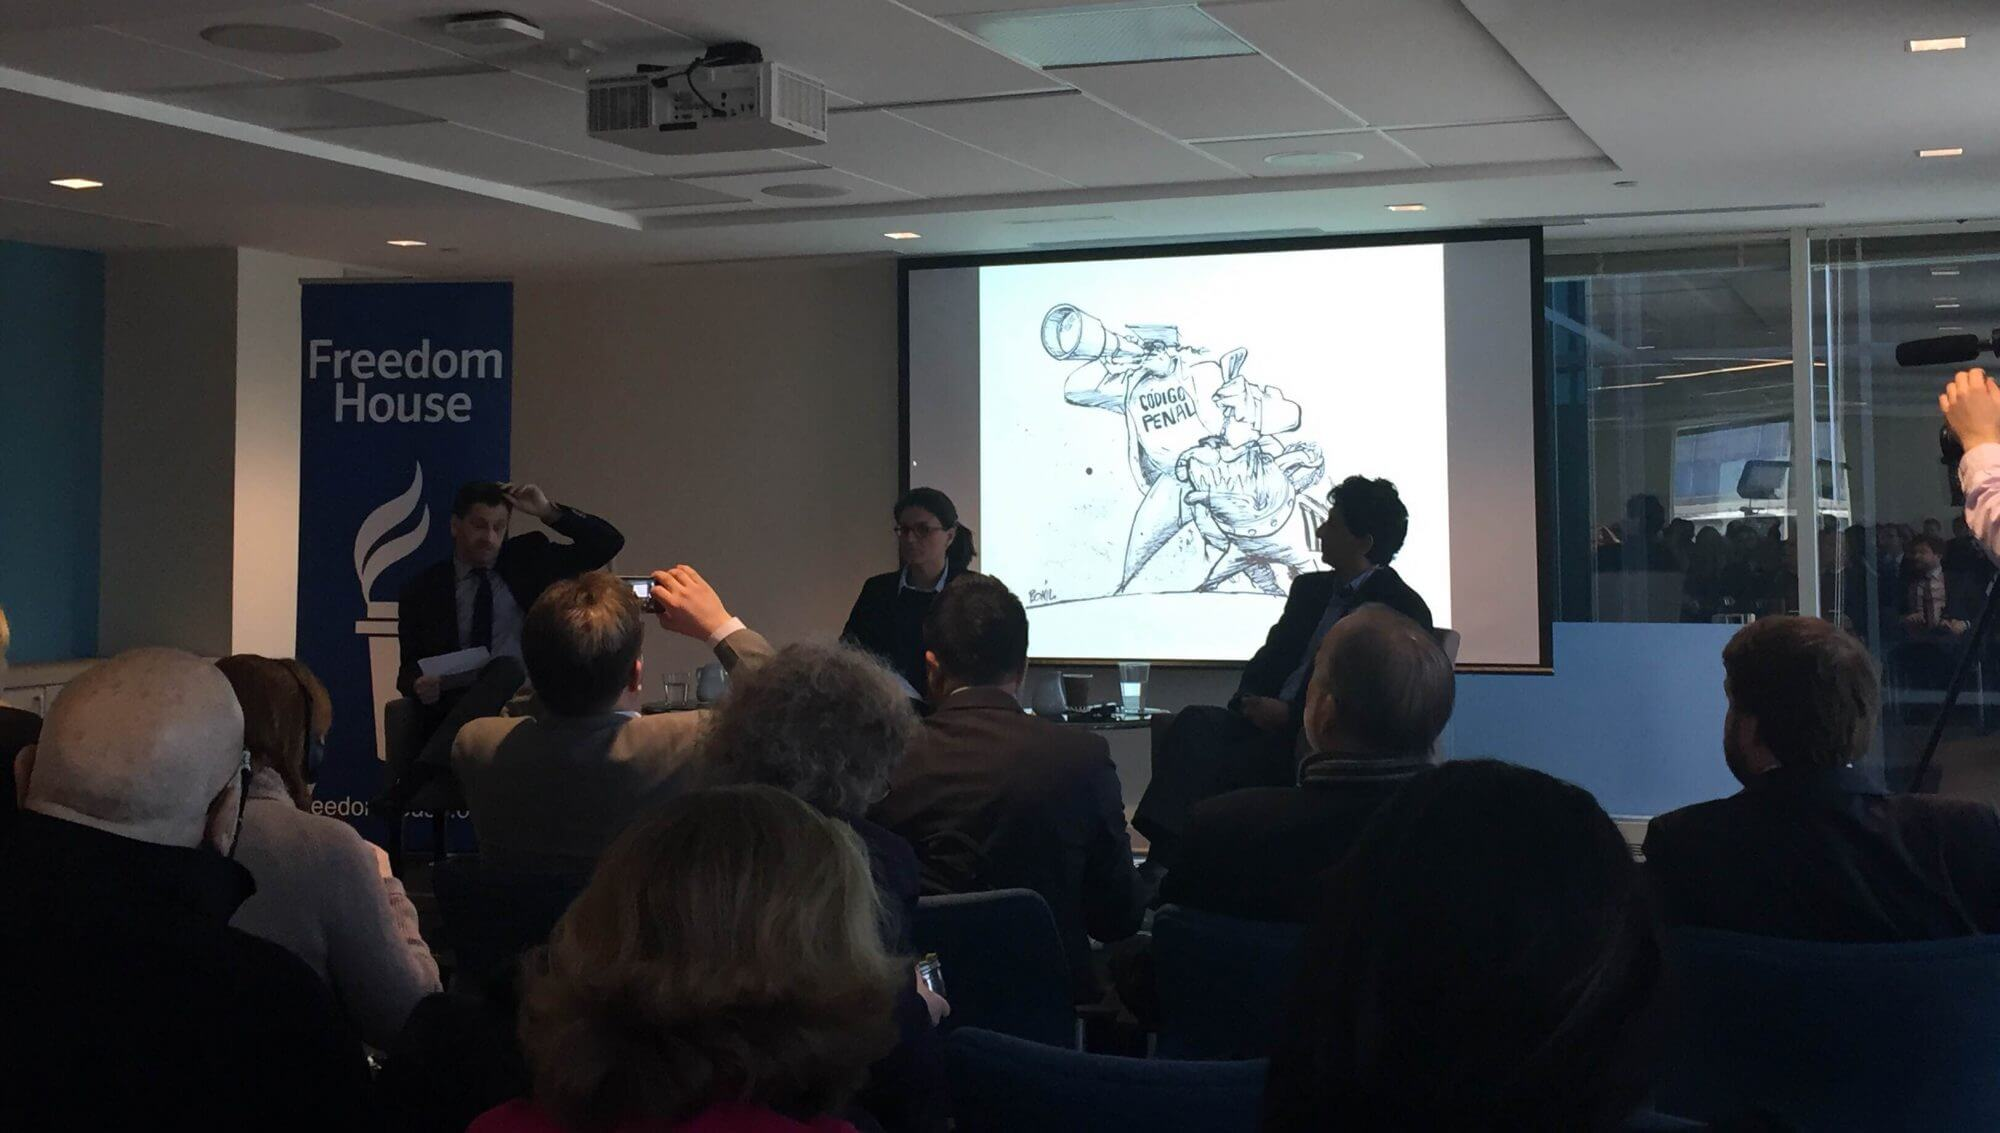 Cartoonists speak out against restrictions on press